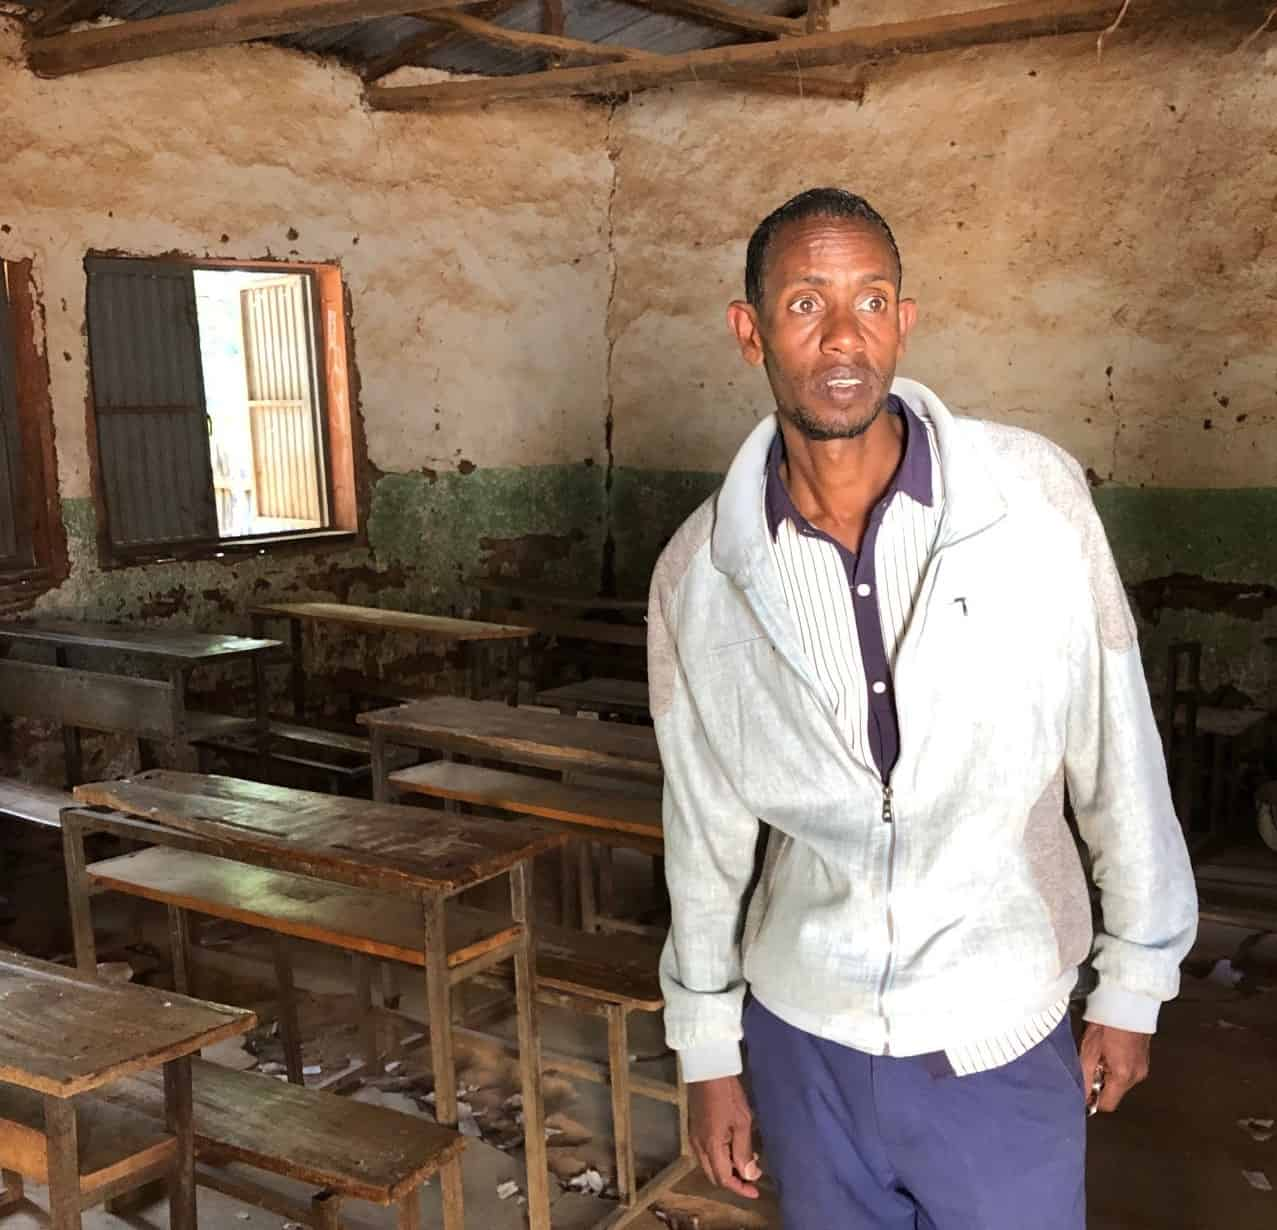 Ethiopian students in Kifle Gami's school faced an uncertain future before their water filter arrived